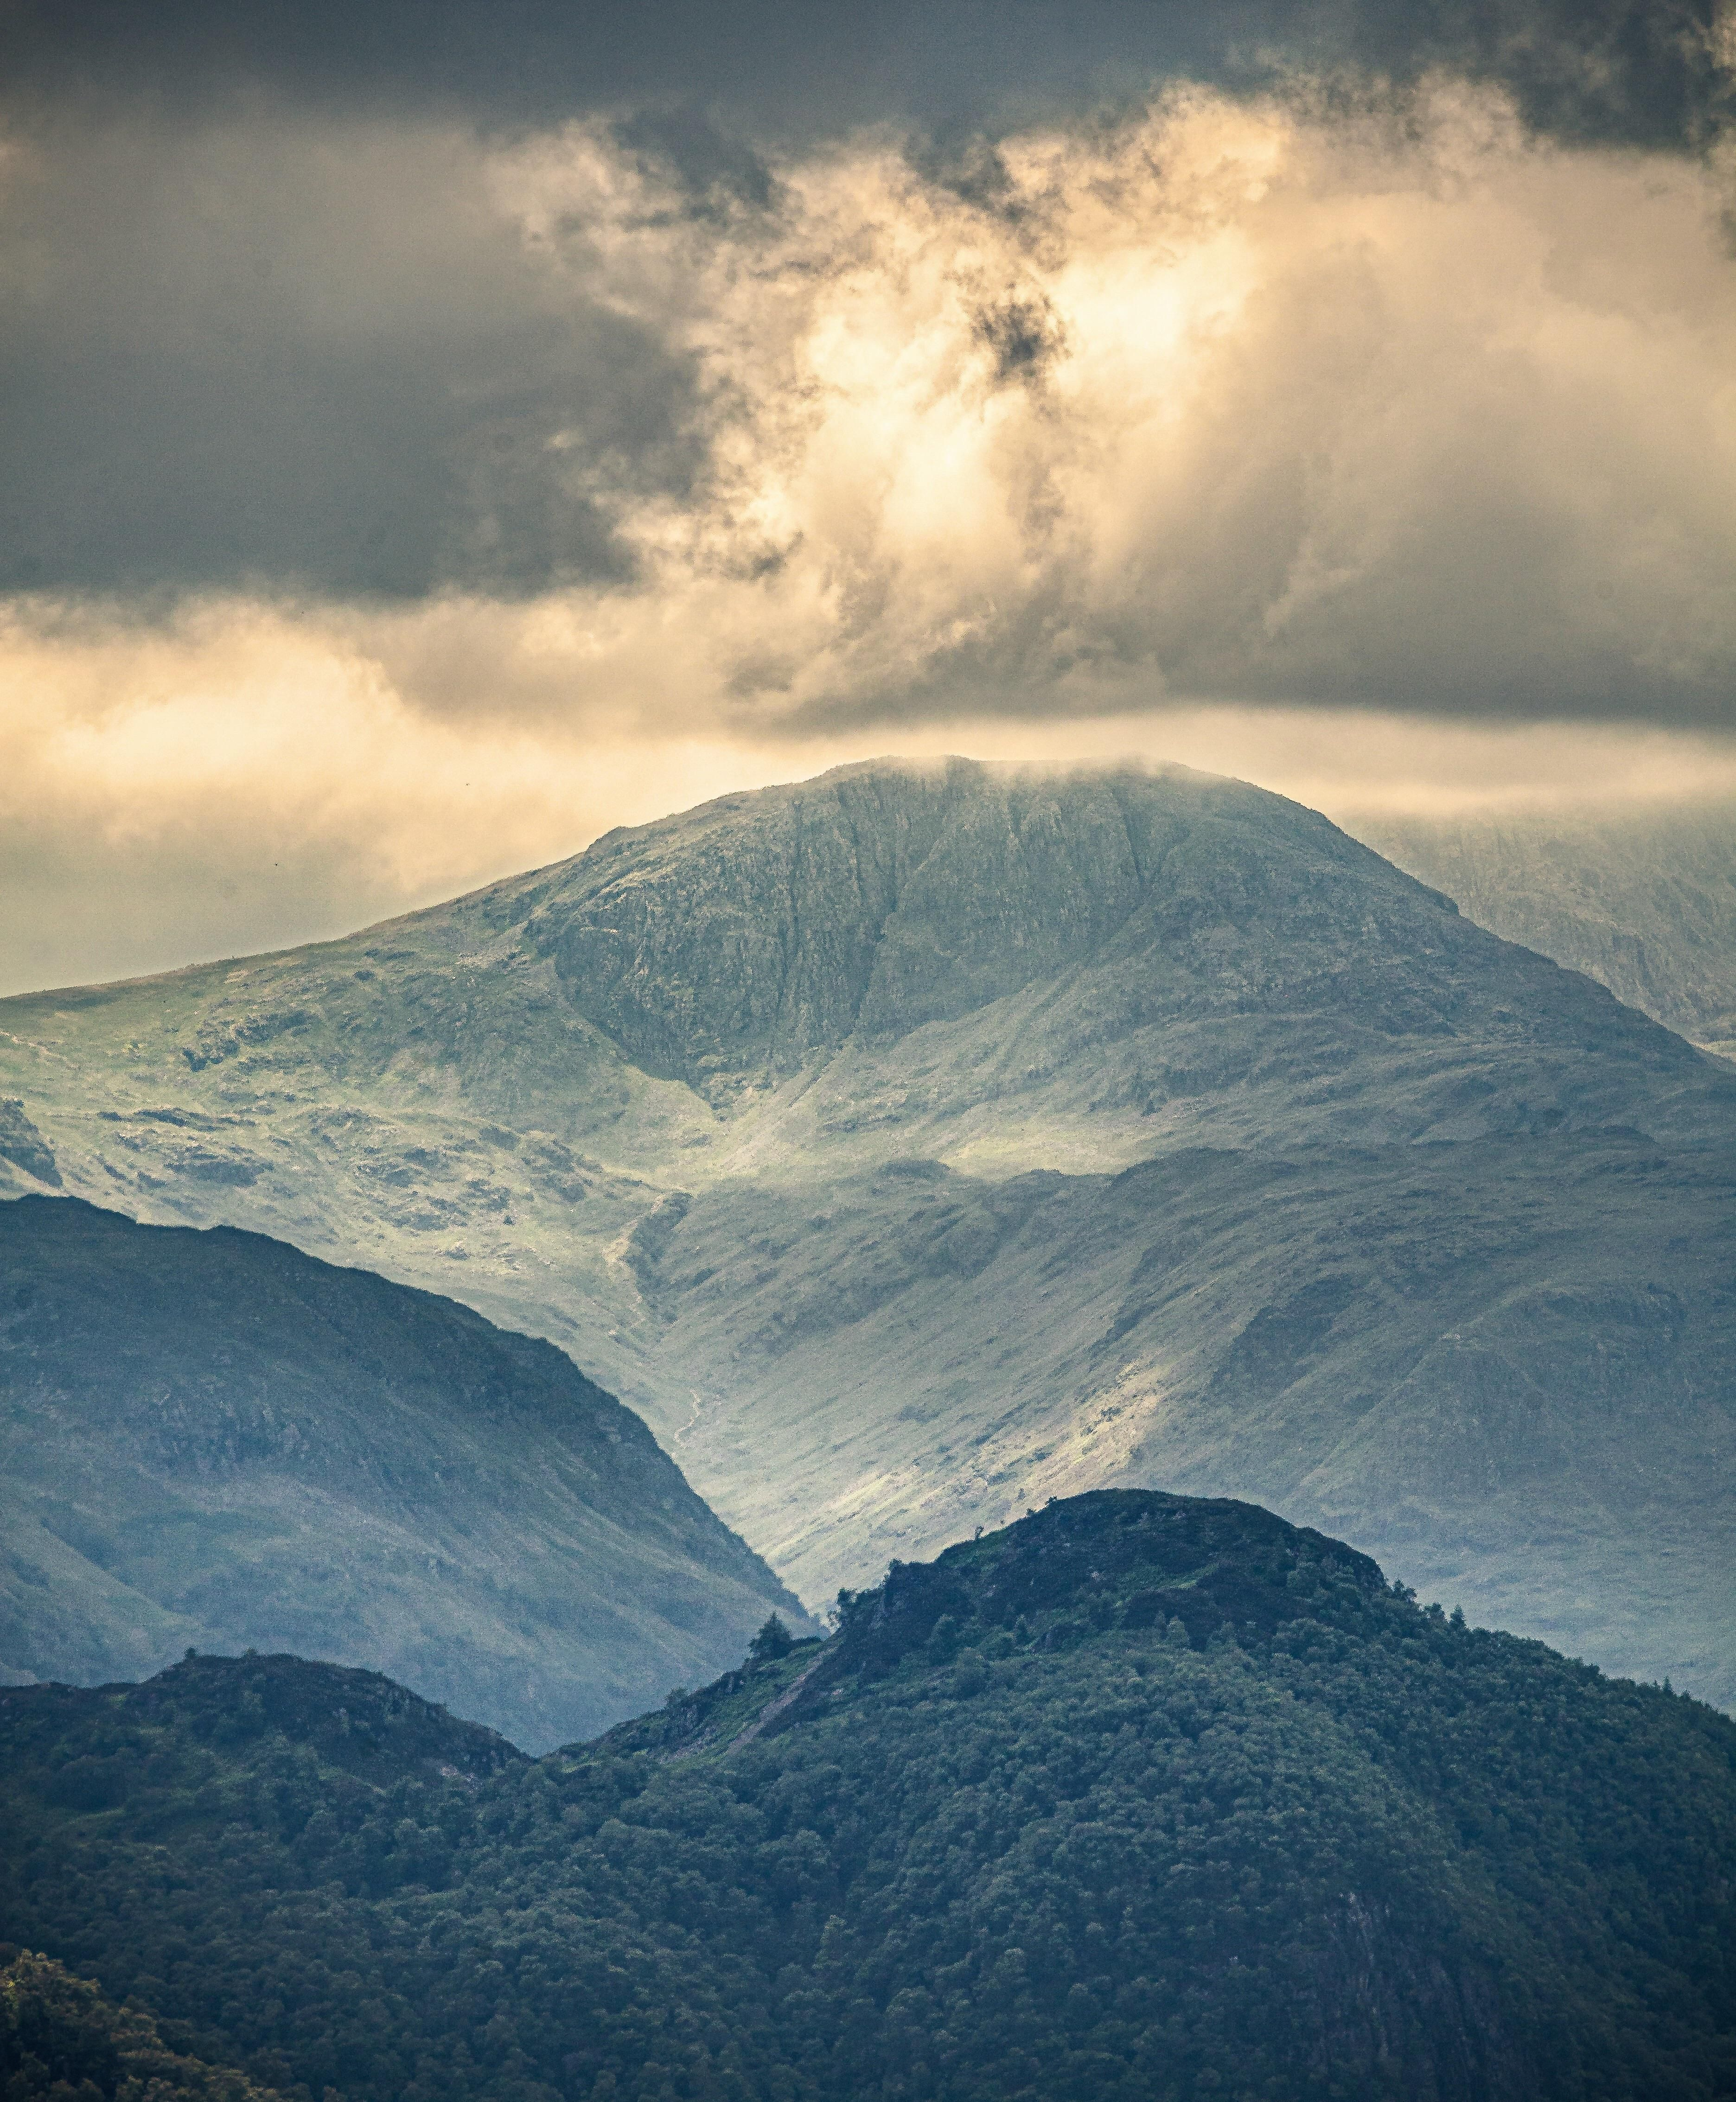 Oc Misty Mountains Of The Lake District In Northern England 3744x4534 Music Indieartist Chicago Lake District Mountains Misty